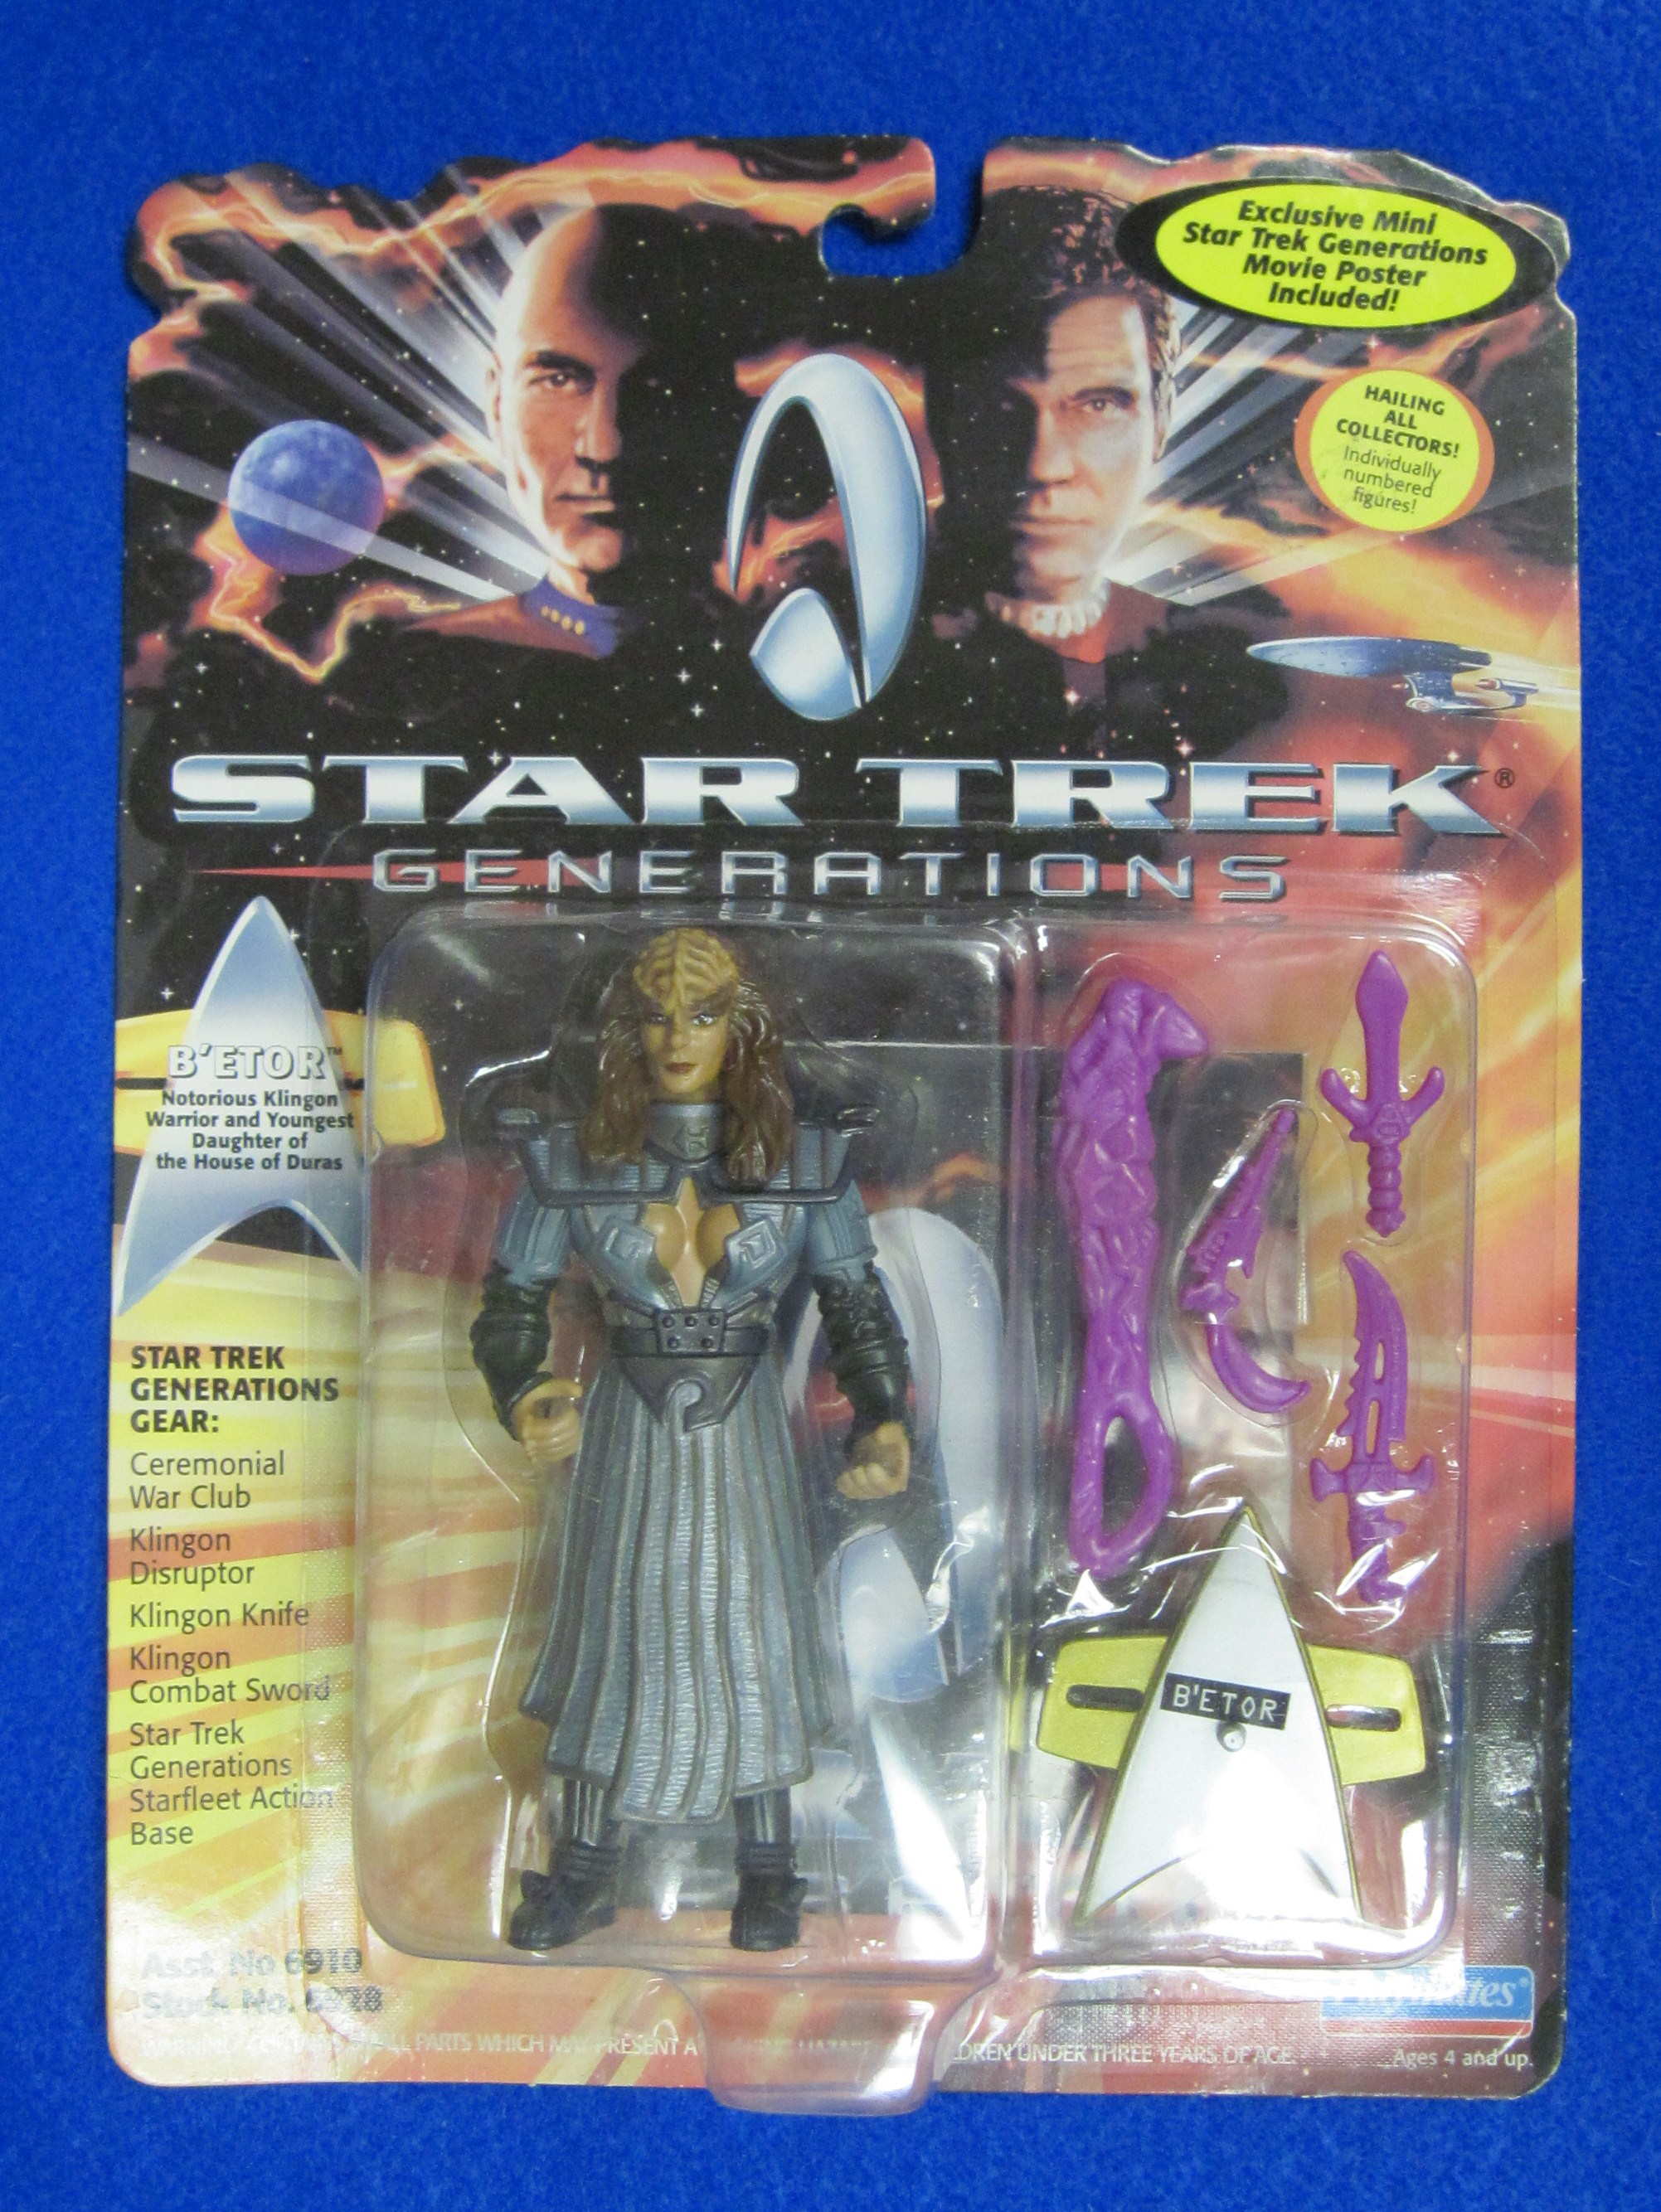 Star Trek Generations Action Figure - B'ETOR